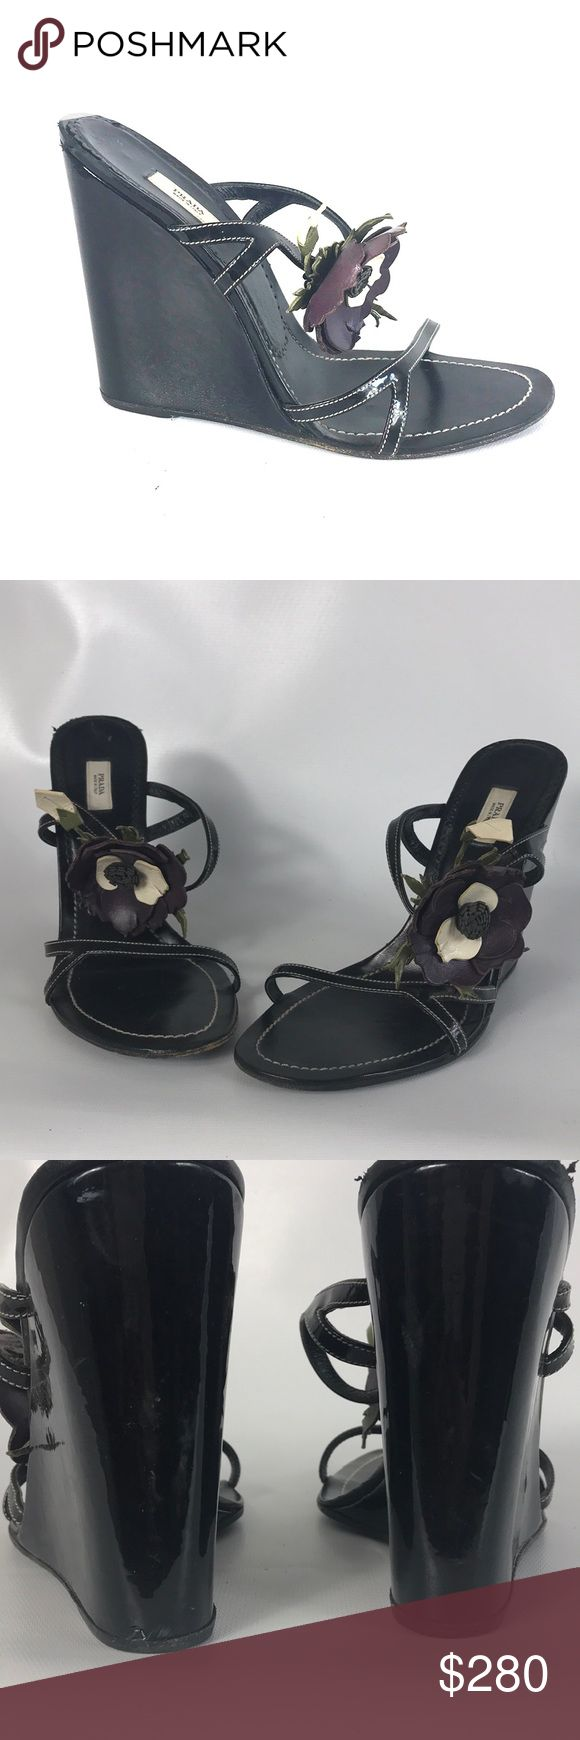 ❤️ SALE Prada lady shoes with flowers size 10 Condition 8/10 , normal amount of scuffs around both shoes from normal wear, great shape, size 10, European 40 , heel height 5', you must have these beauties! Ask questions ❤️ Prada Shoes Platforms